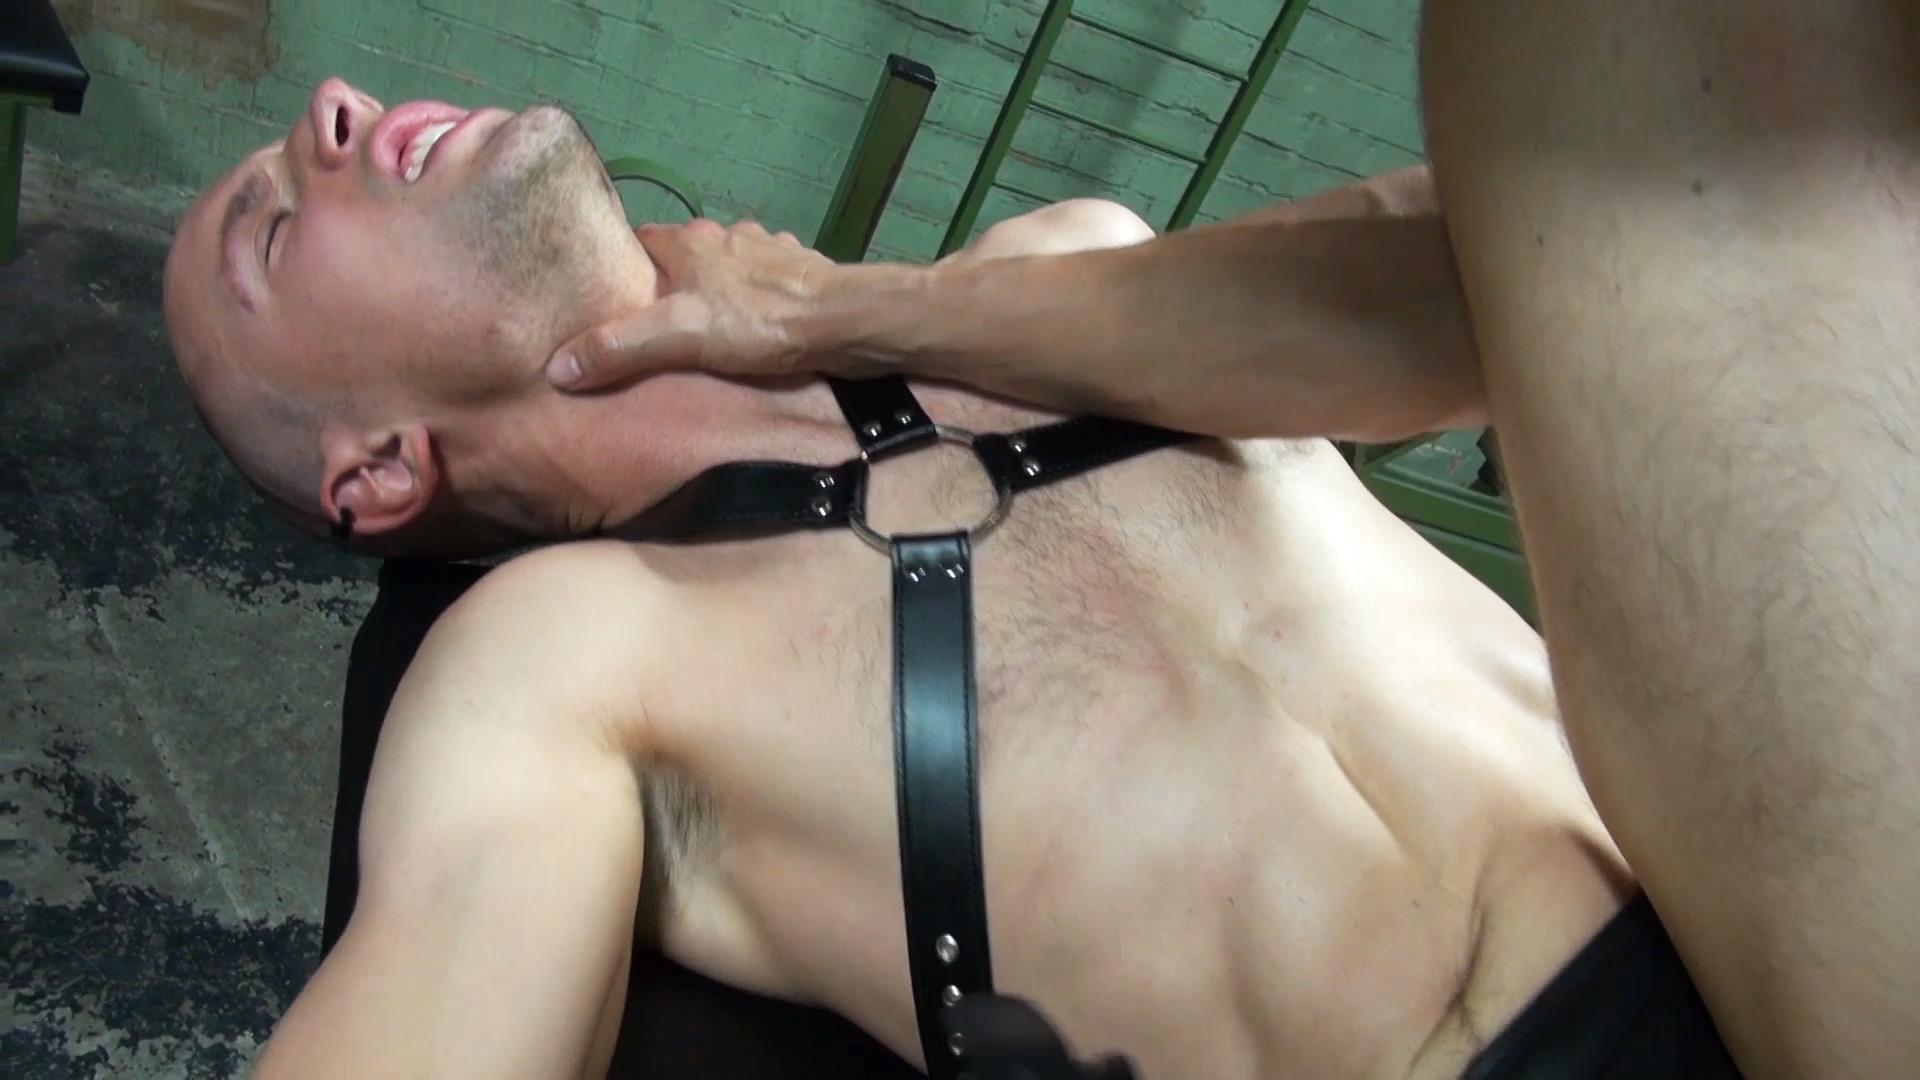 Dark-Alley-XT-Anakonda-and-Jason-Domino-Bareback-Big-Uncut-Cock-Amateur-Gay-Porn-1 Breeding A Slave Hole With A Big Uncut Cock At The Bathhouse